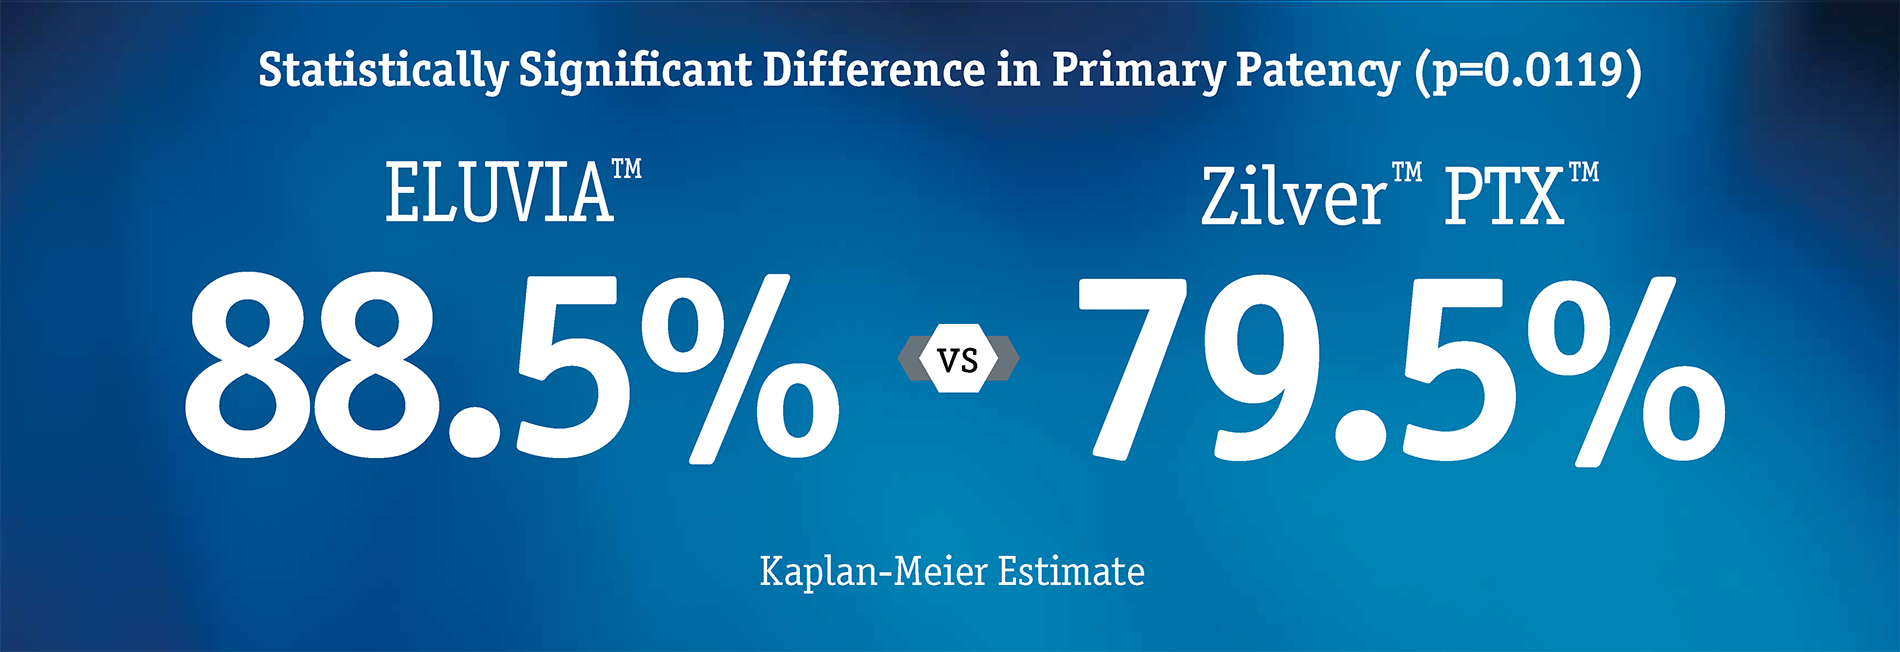 Statistically significant difference in primary patency (p-0.0119) ELUVIA 88.5% vs Zilver PTX 79.5% - Kaplan-Meier Estimate